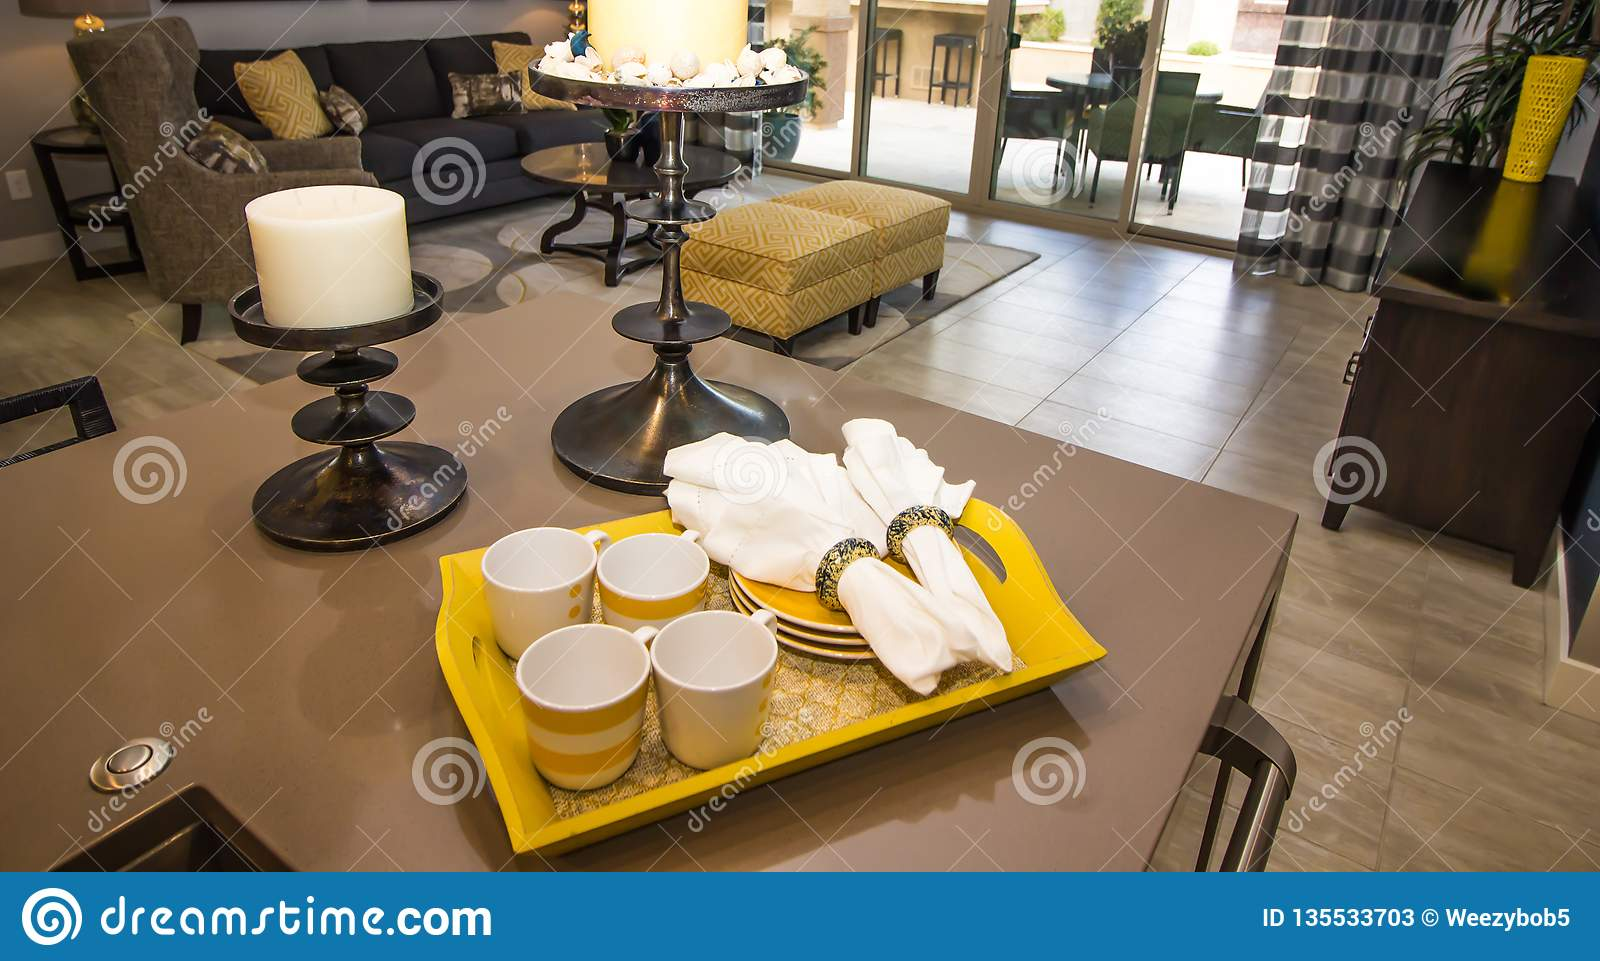 Tray Of Coffee Cups, Plates And Napkins On Kitchen Counter